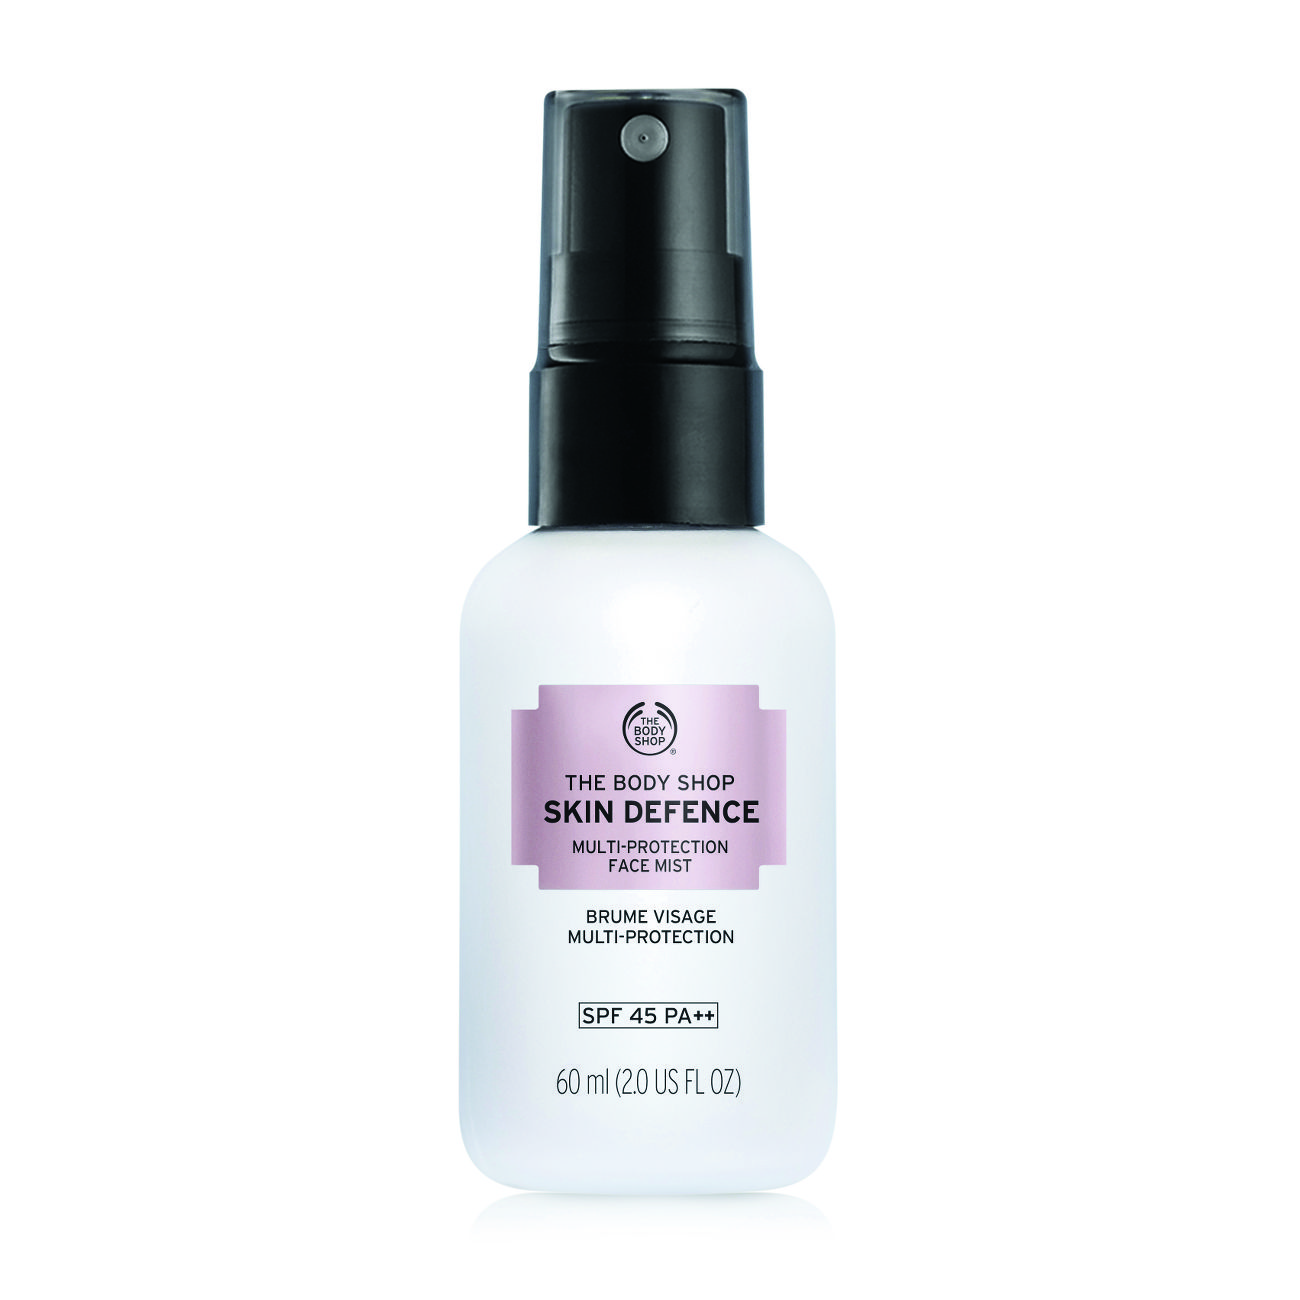 The Body Shop Skin Defence Spray Bottle SPF 45 PA++_ INR 2,895